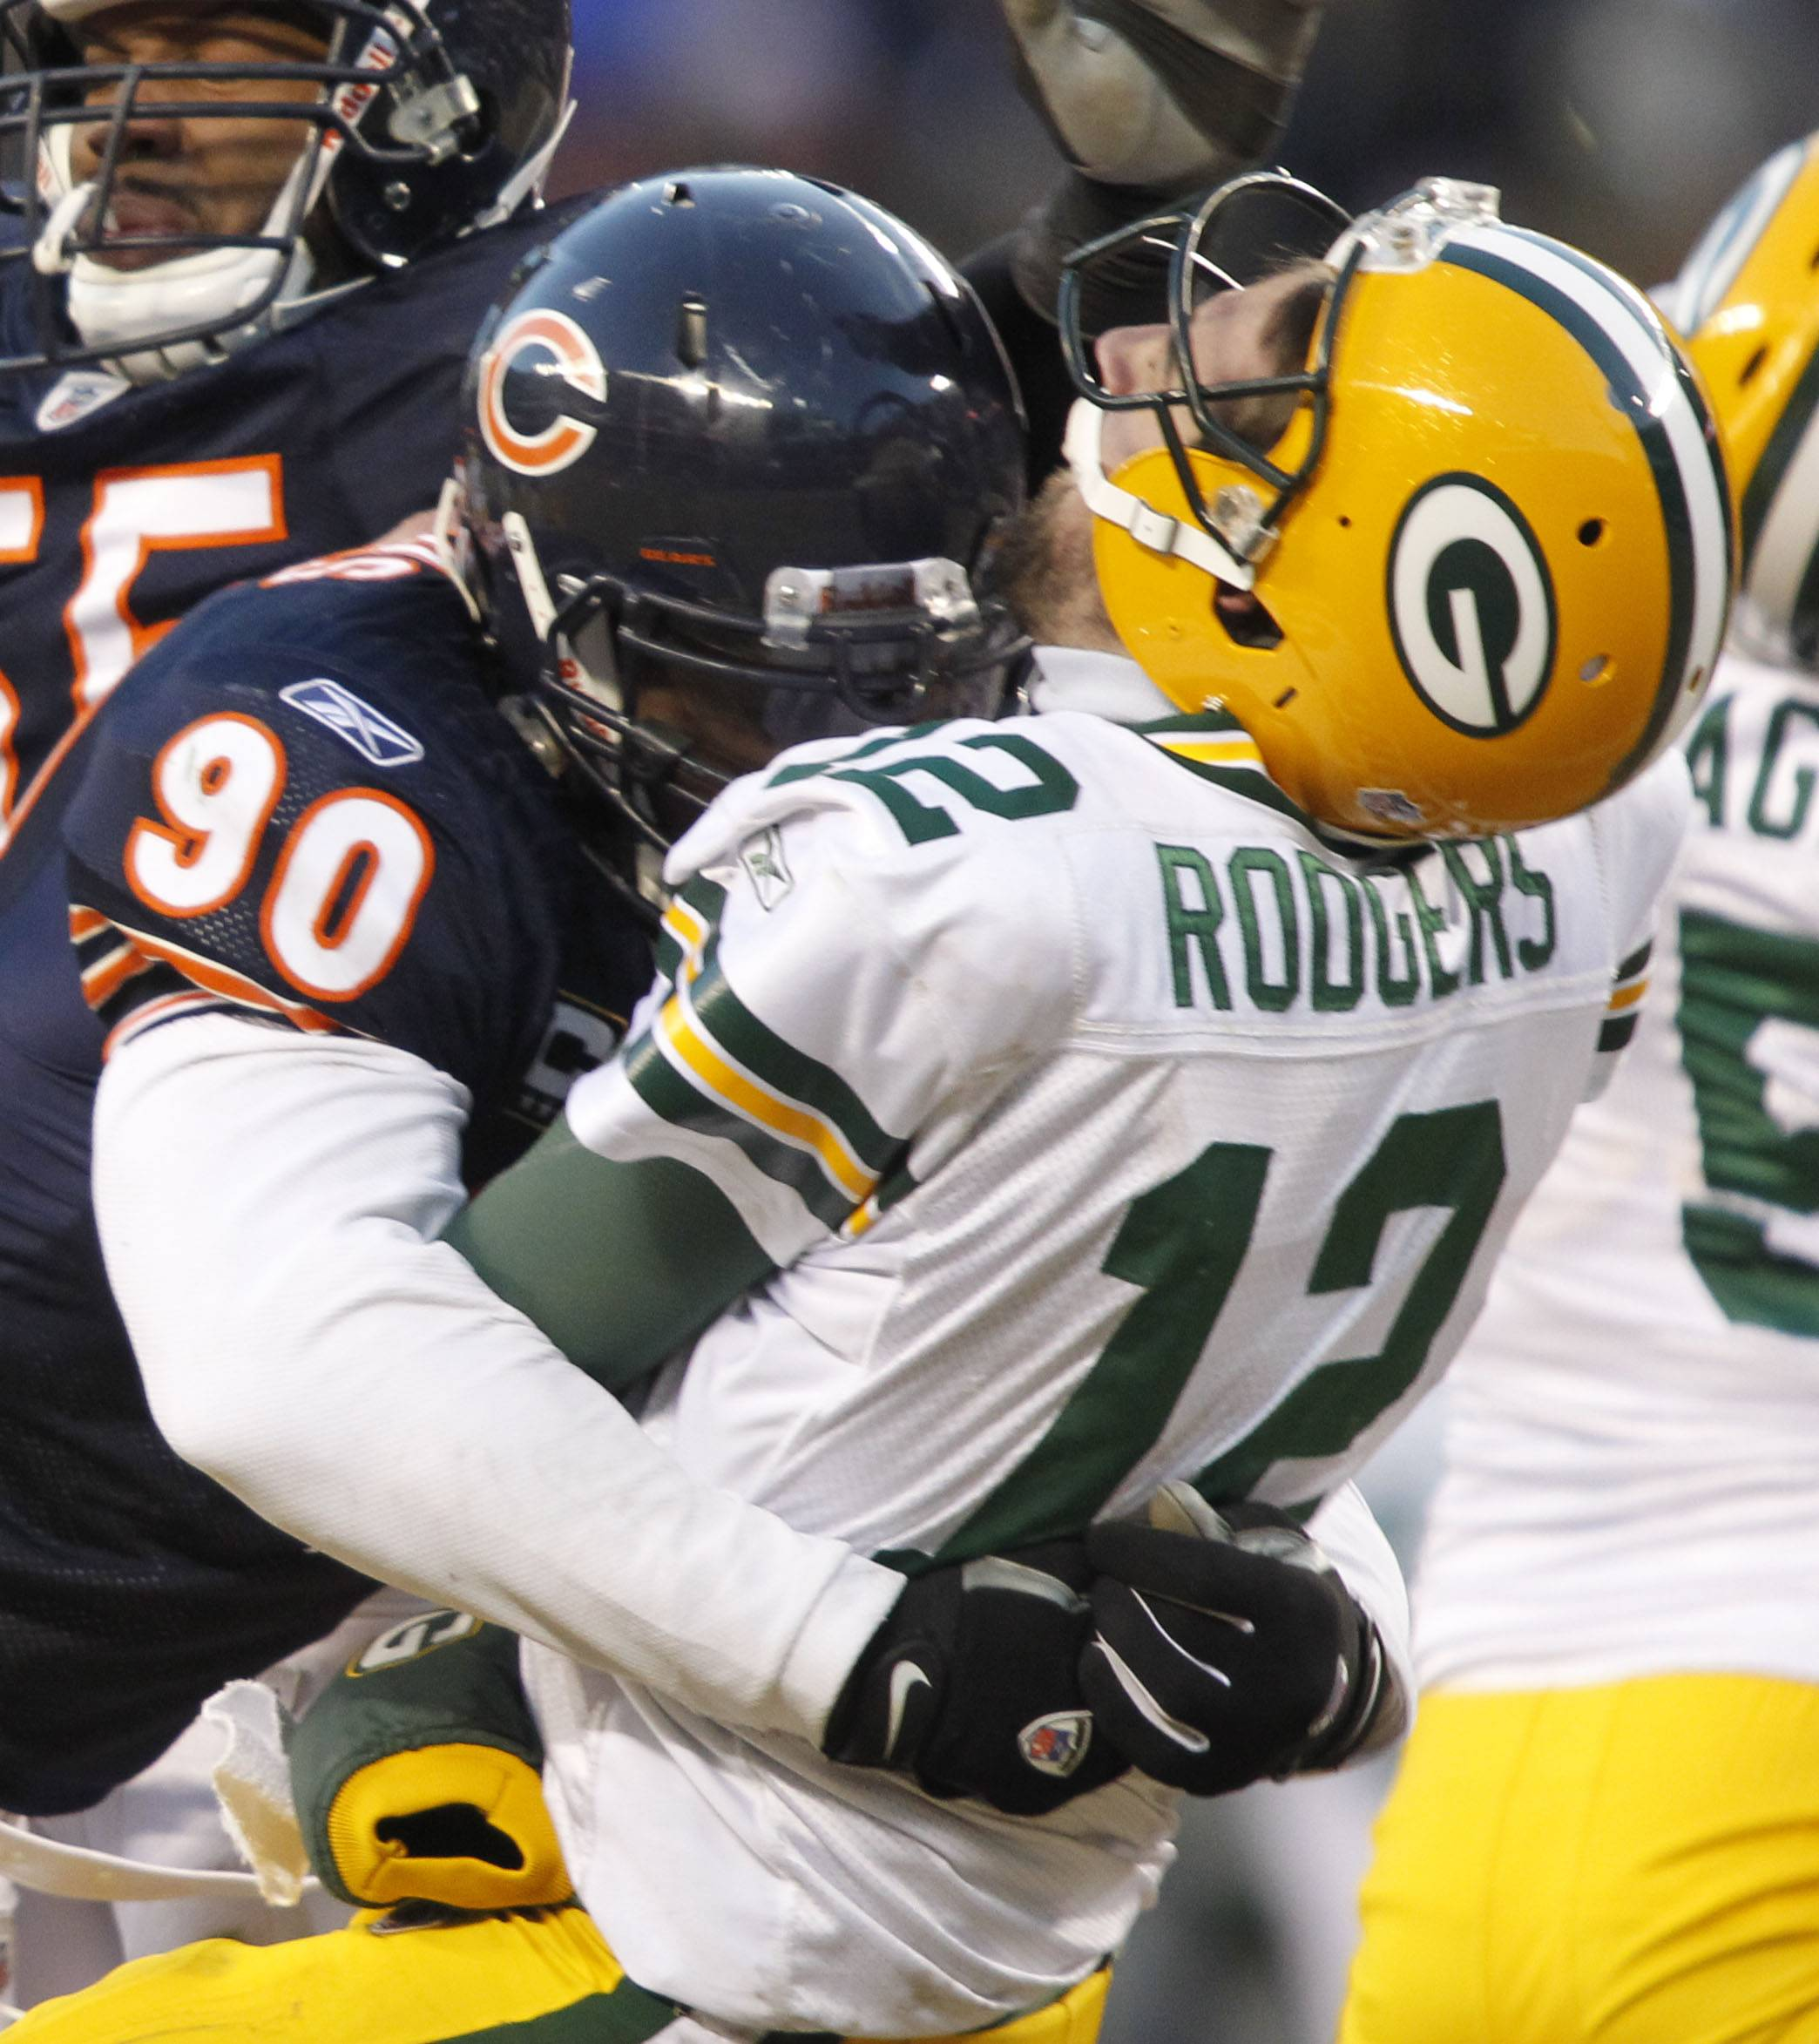 Green Bay quarterback Aaron Rodgers won't have to worry about getting sacked by Julius Peppers (90) again. The former Bears defensive end signed a three-year deal with the Packers.